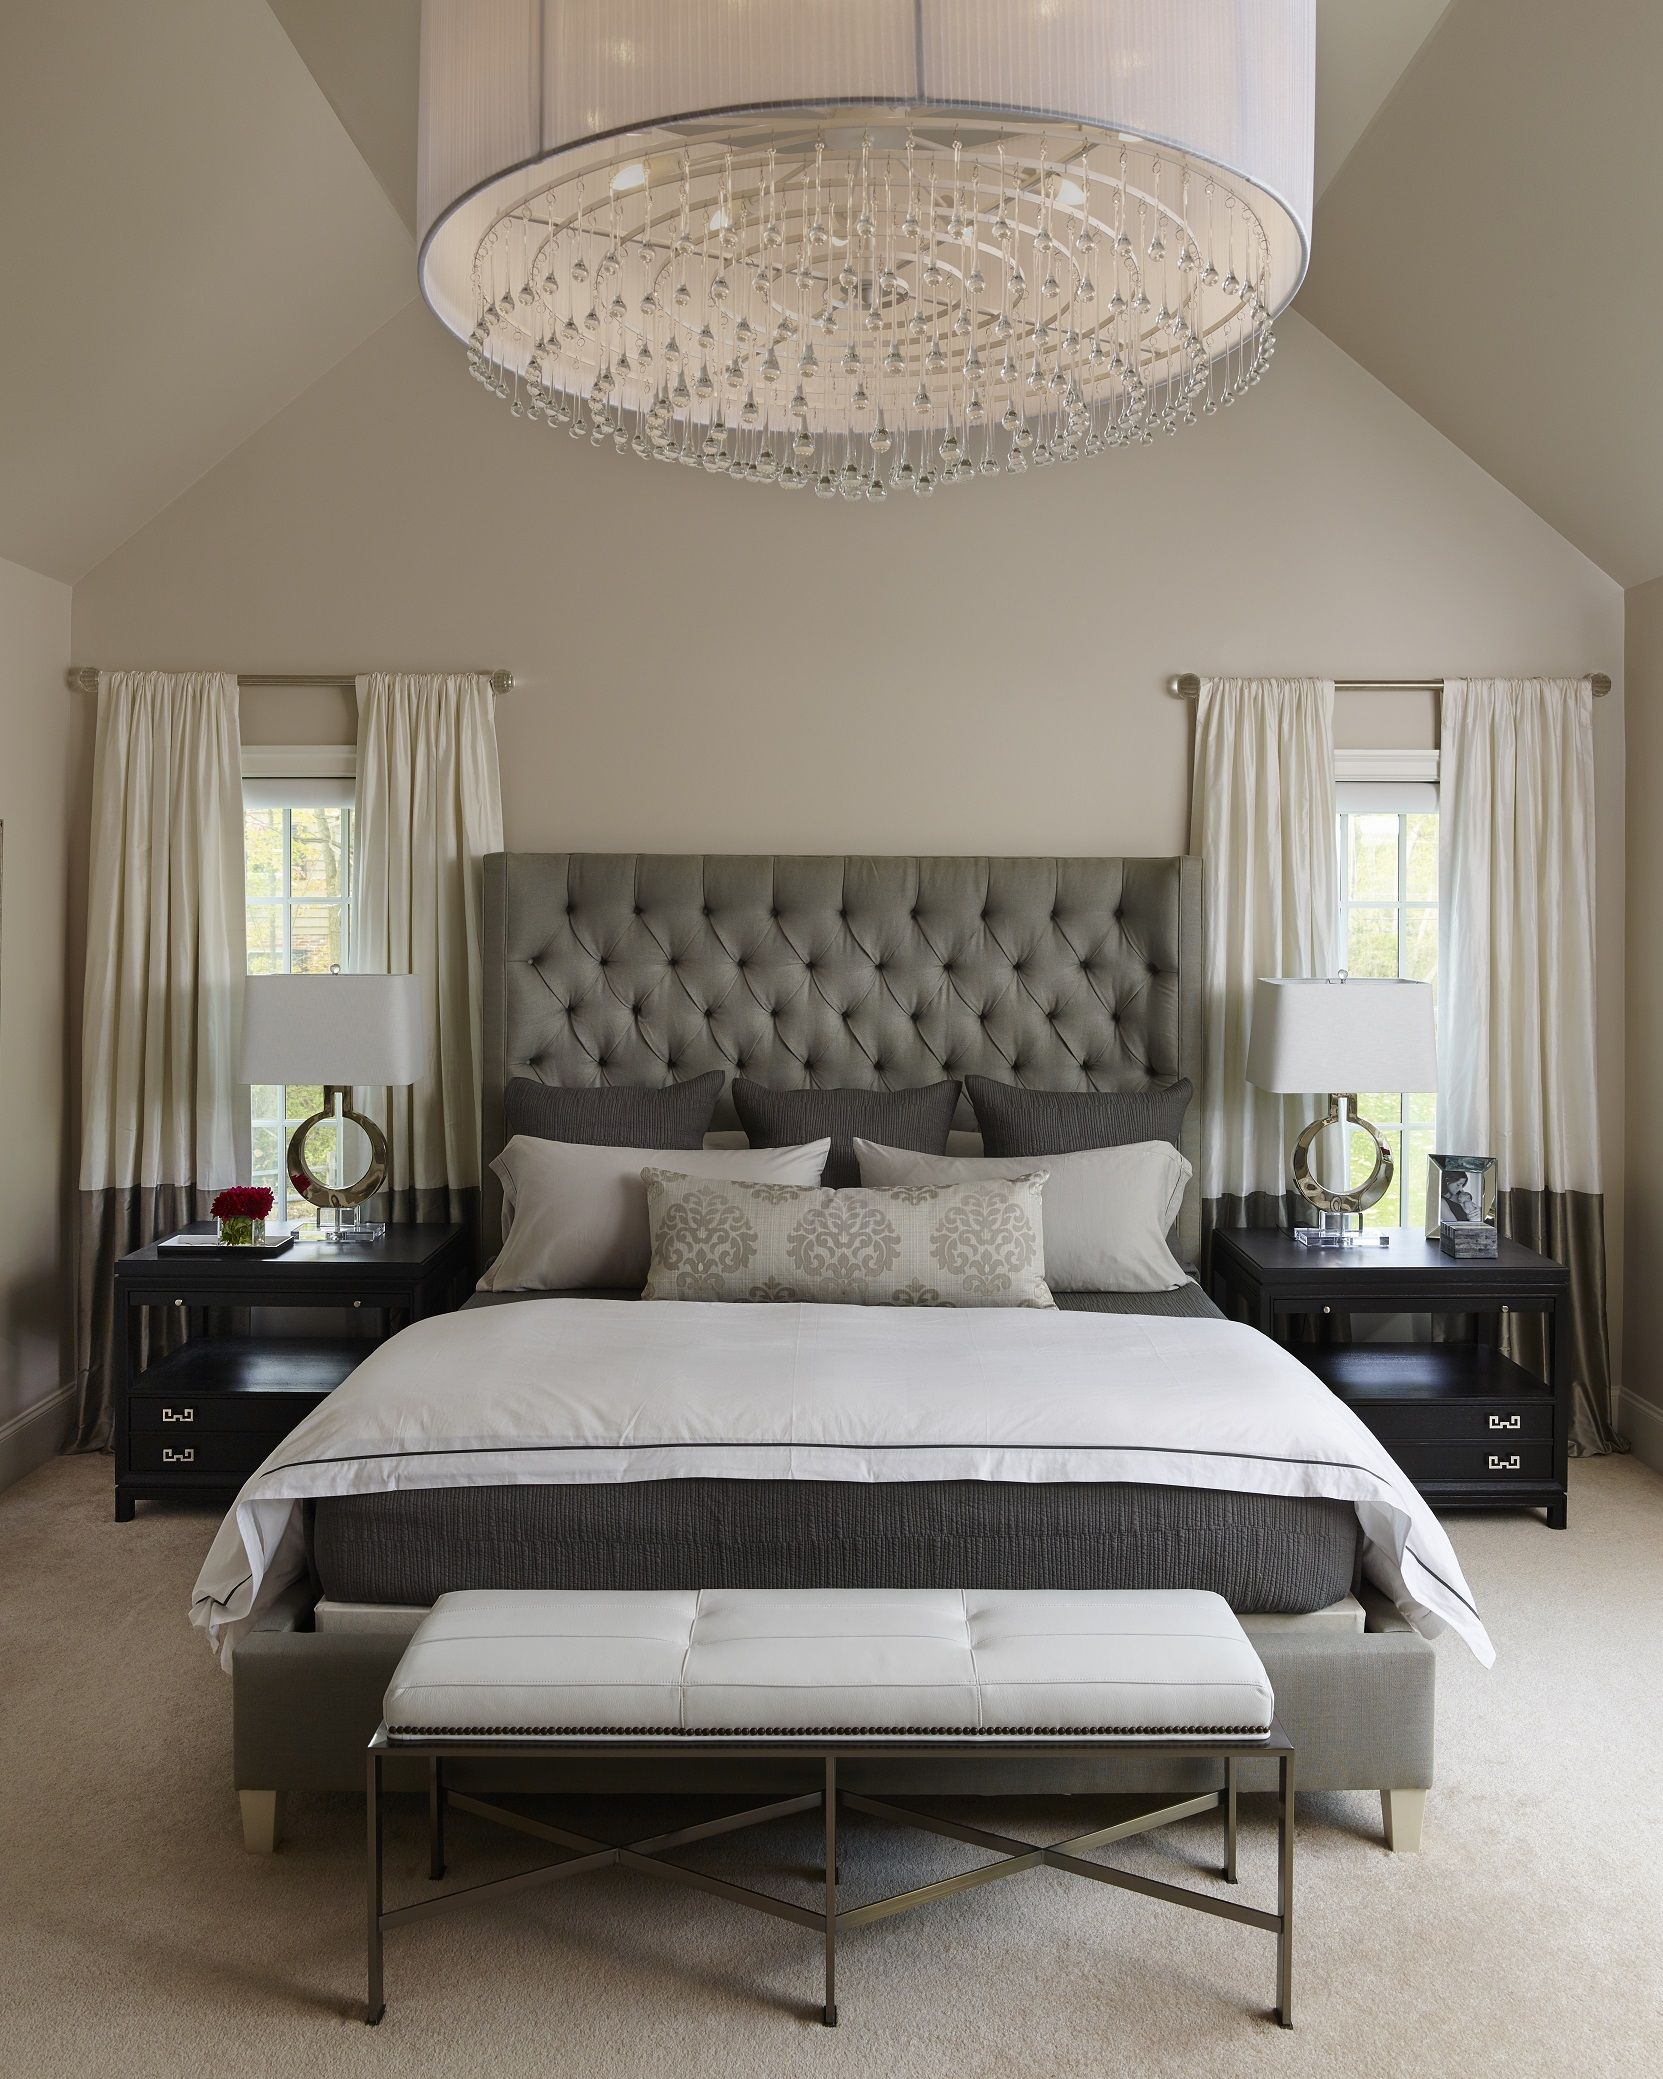 Napa Chic Master Bedroom Michelle Wenitsky Interior